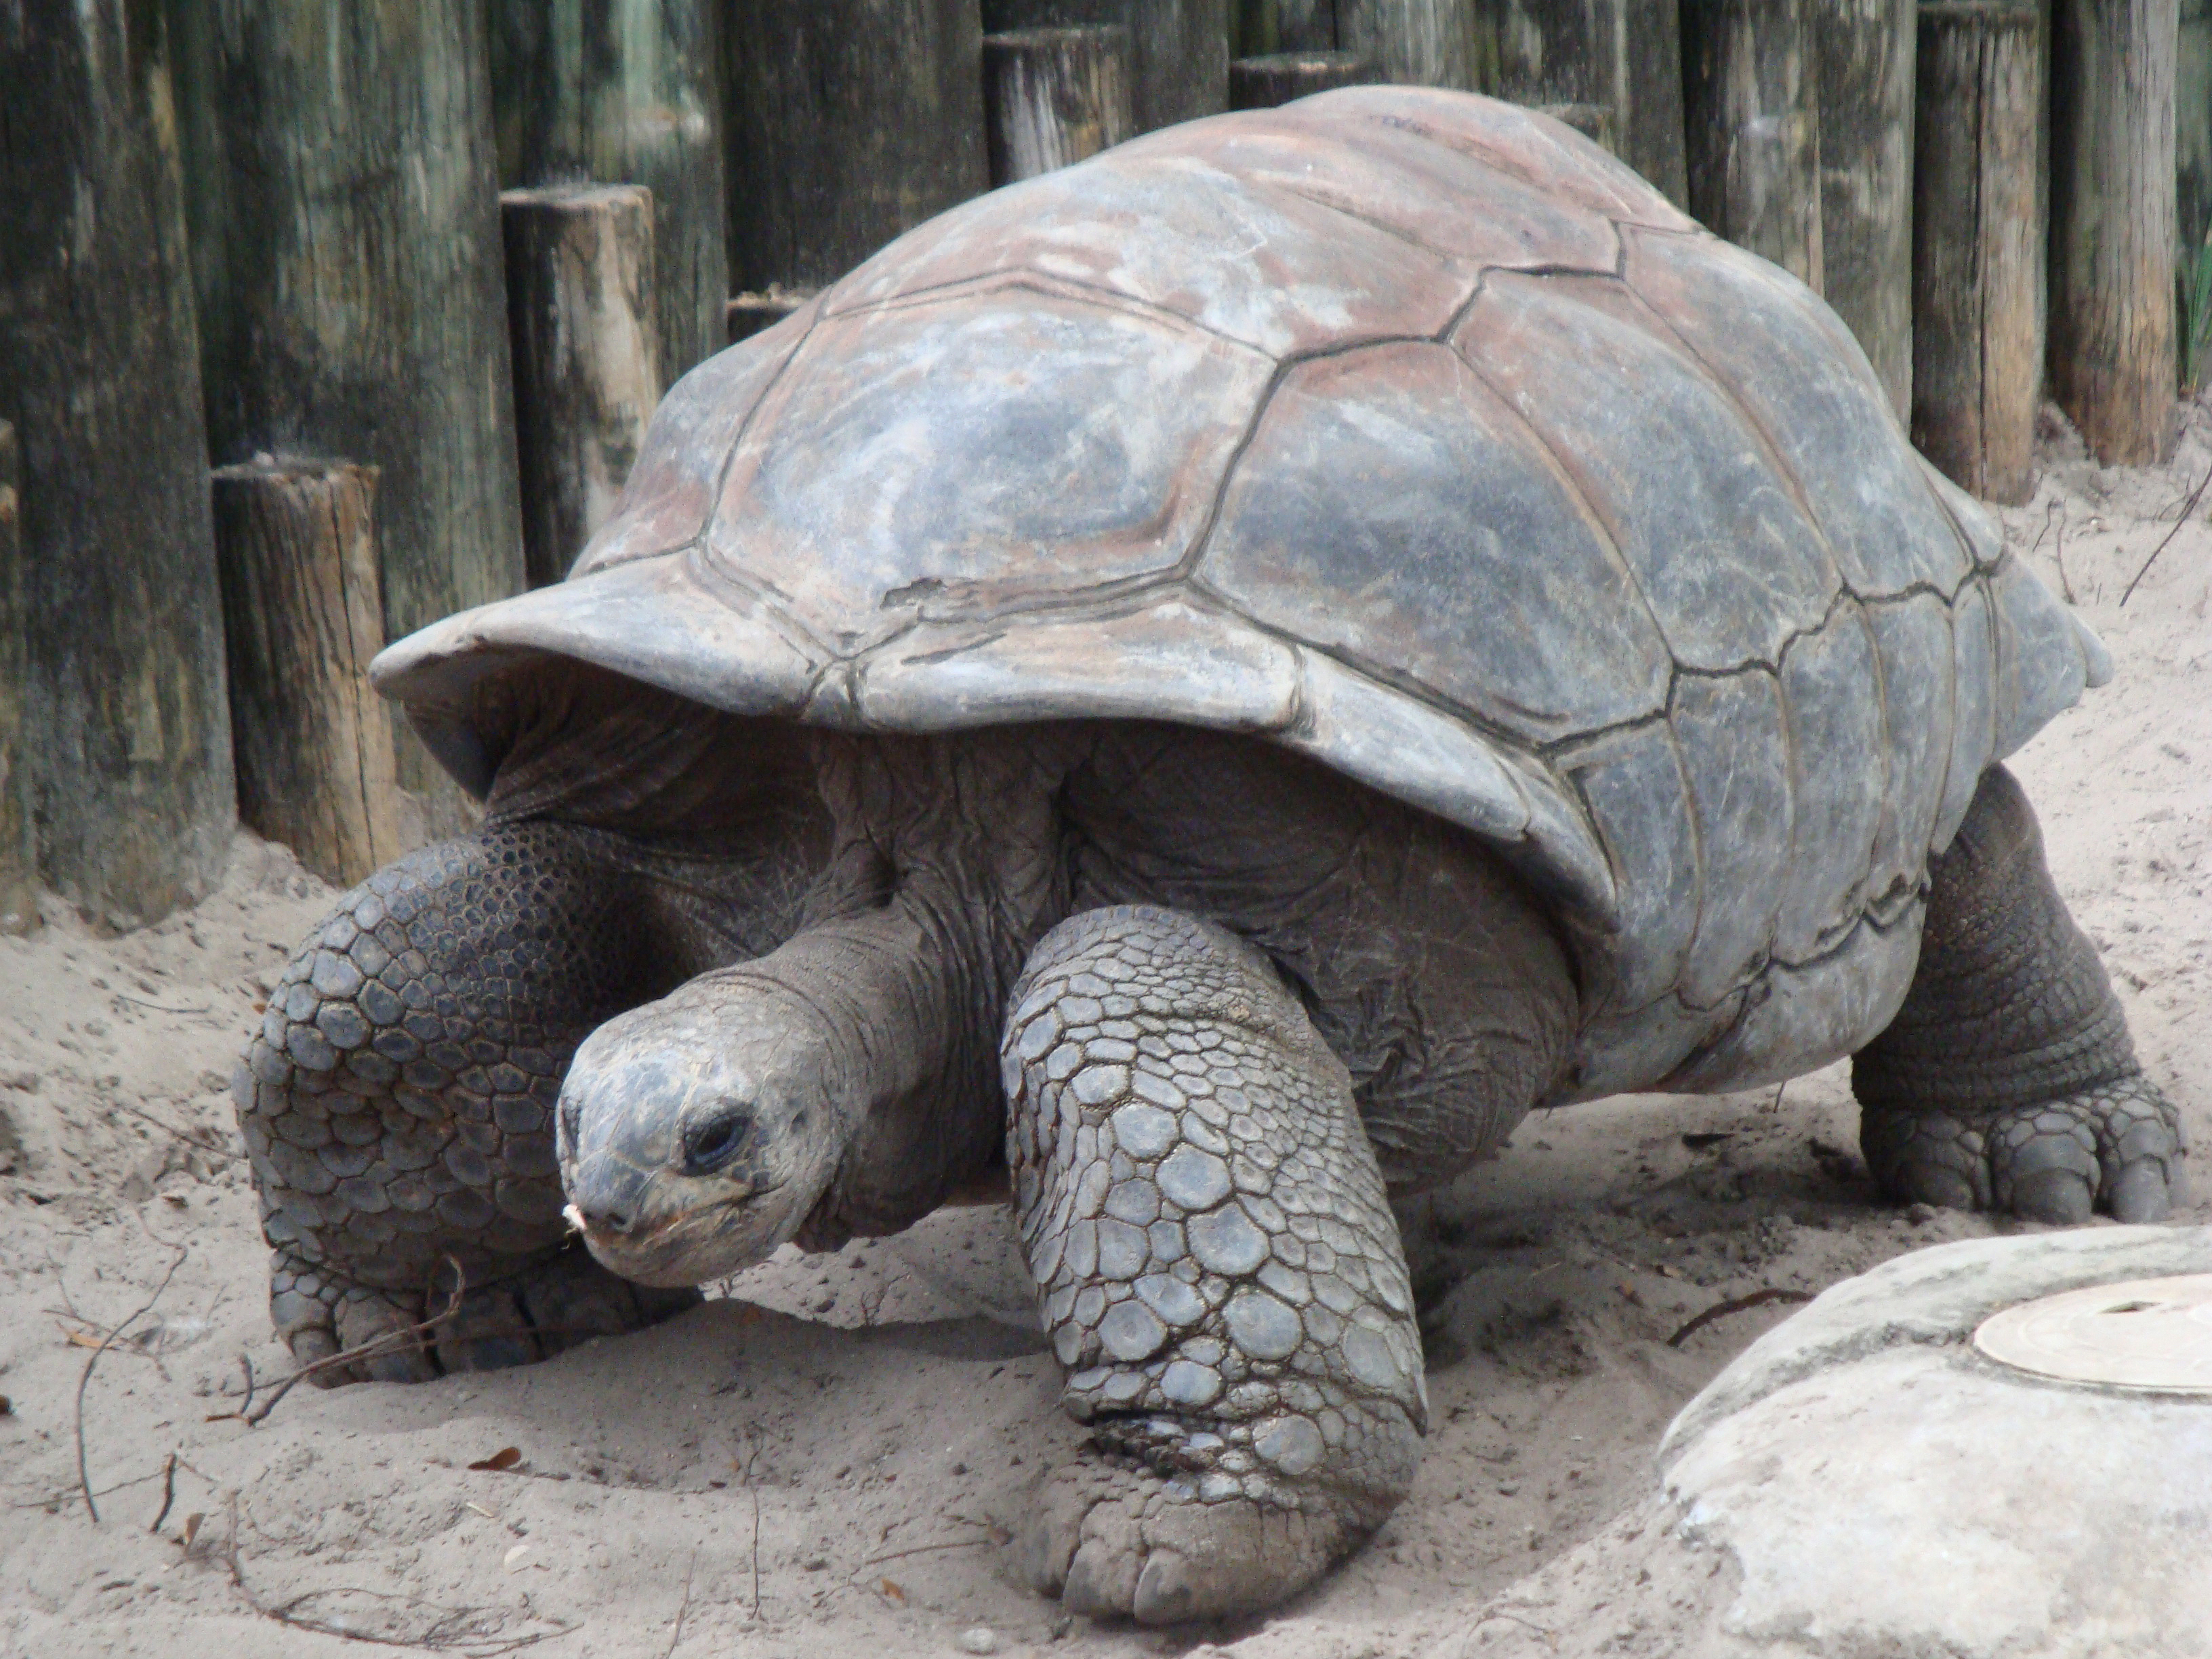 Uncategorized Tortoise Pictures For Kids how the tortoise got its shell quiz fun free interactive earth science for kids